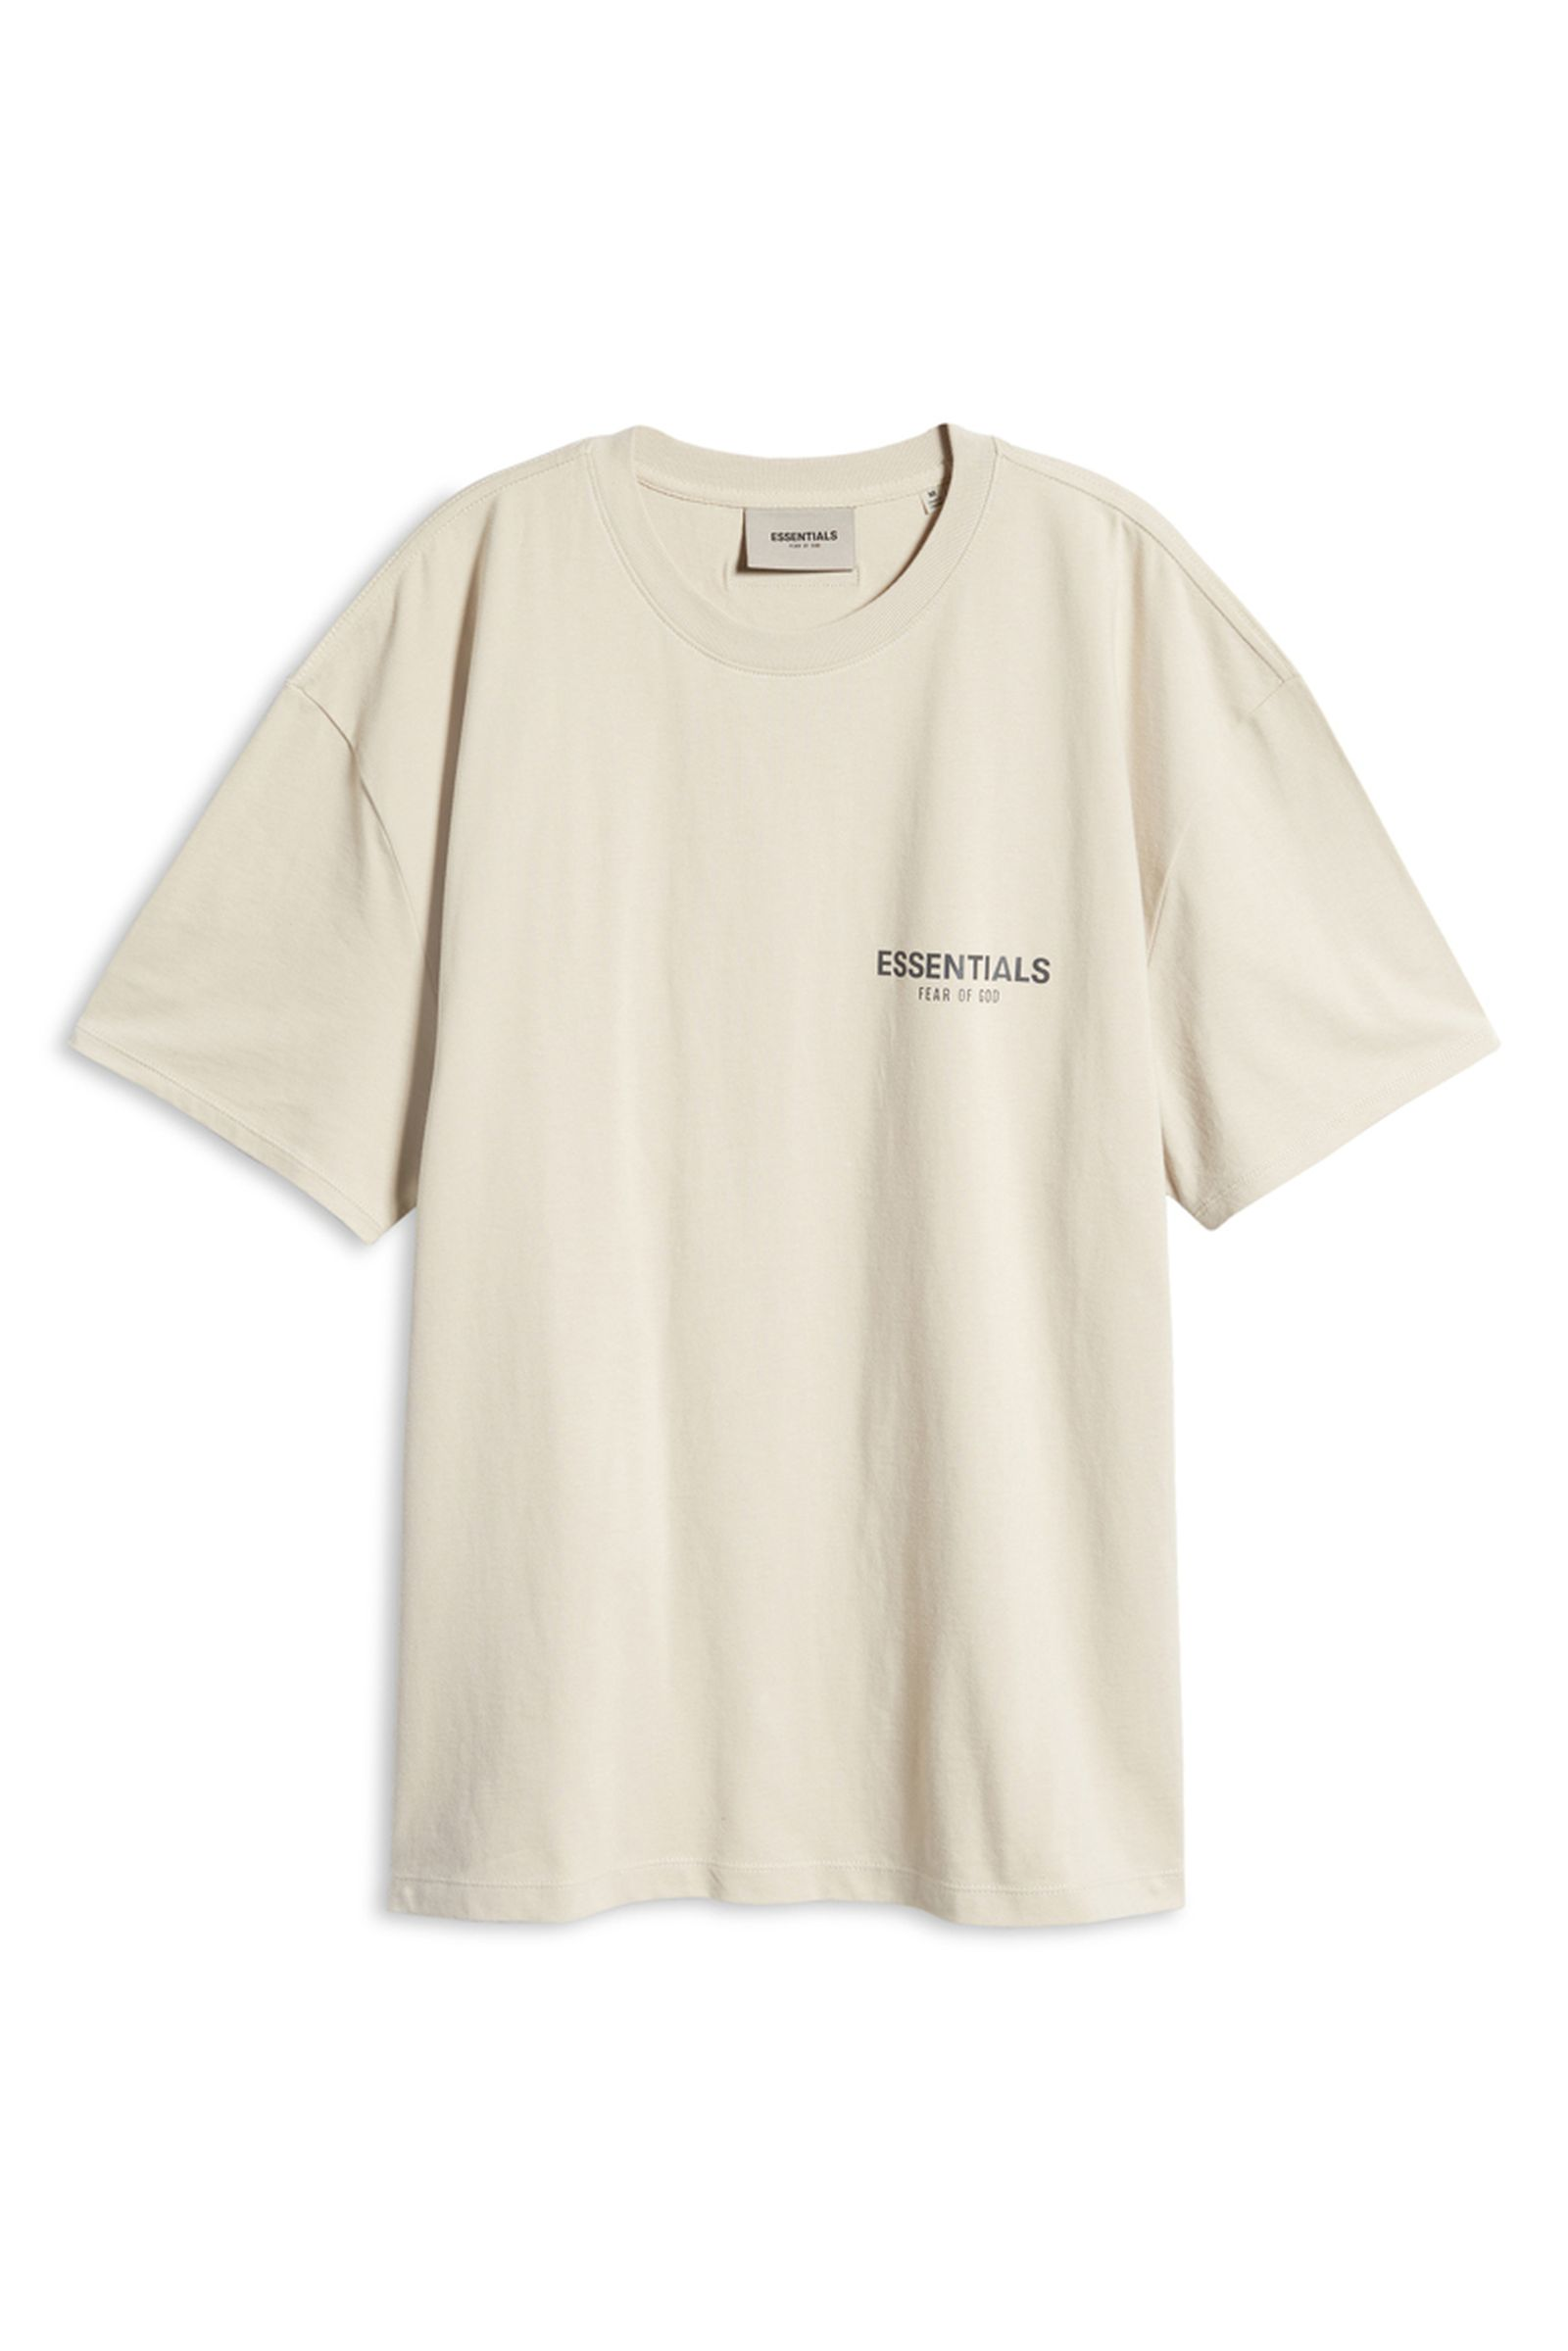 fear of god essentials nordstrom exclusive (15)